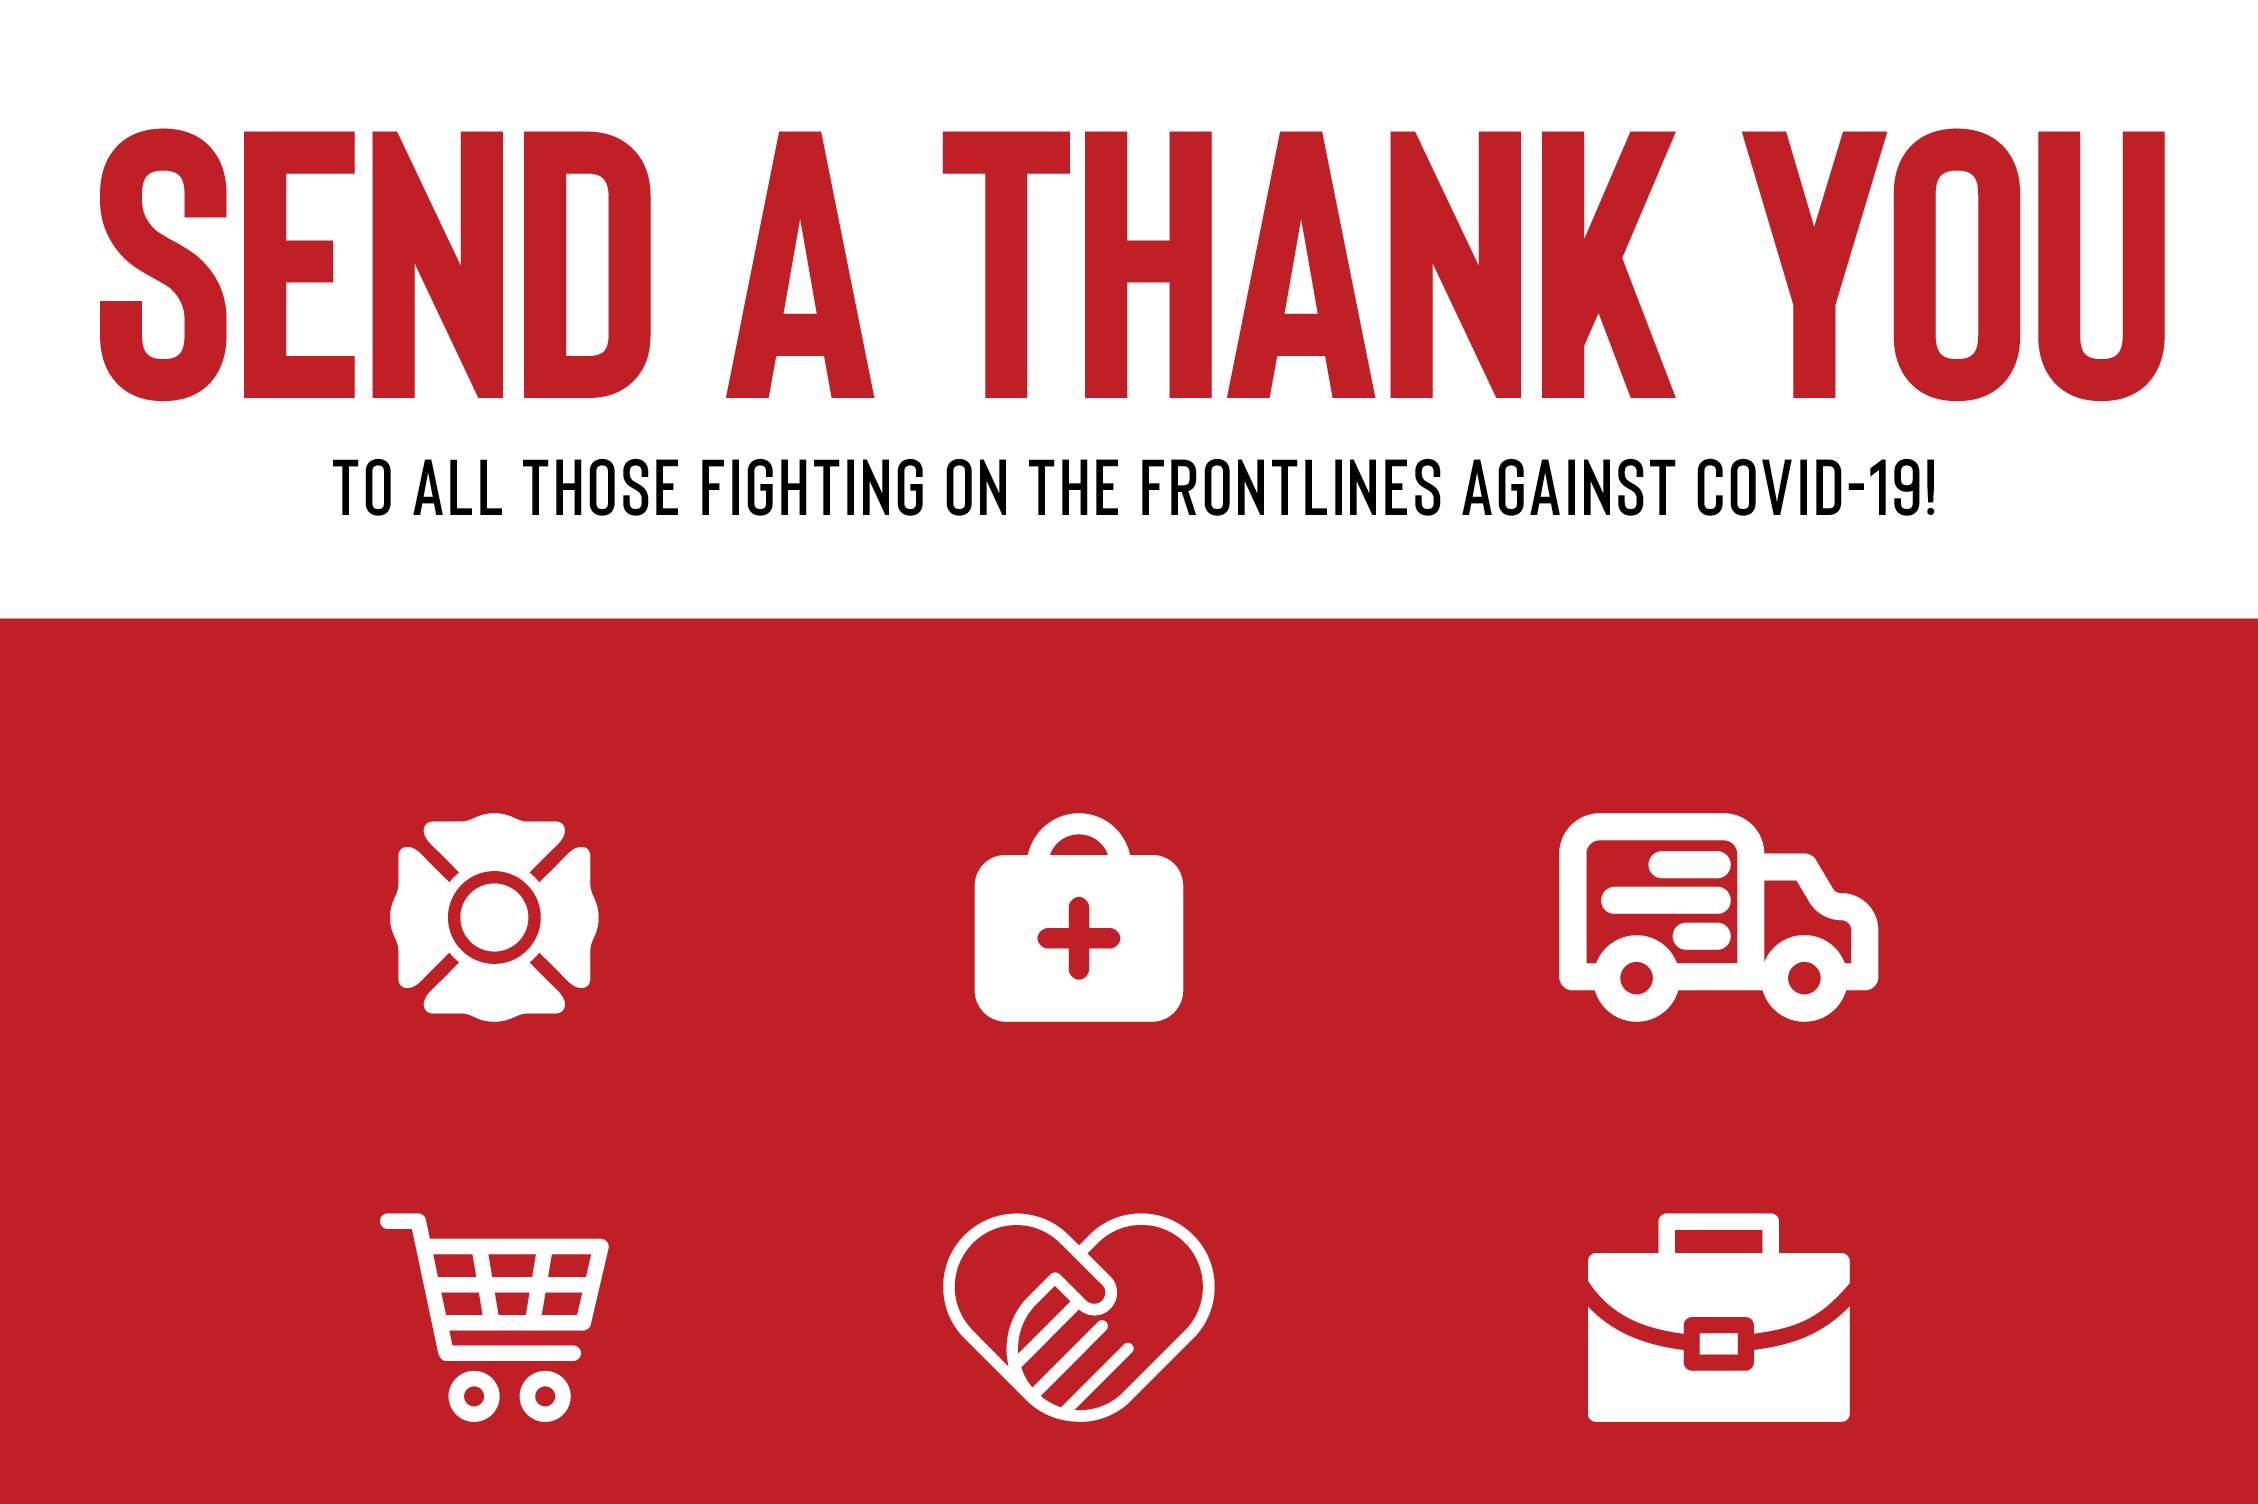 Send a thank you graphic